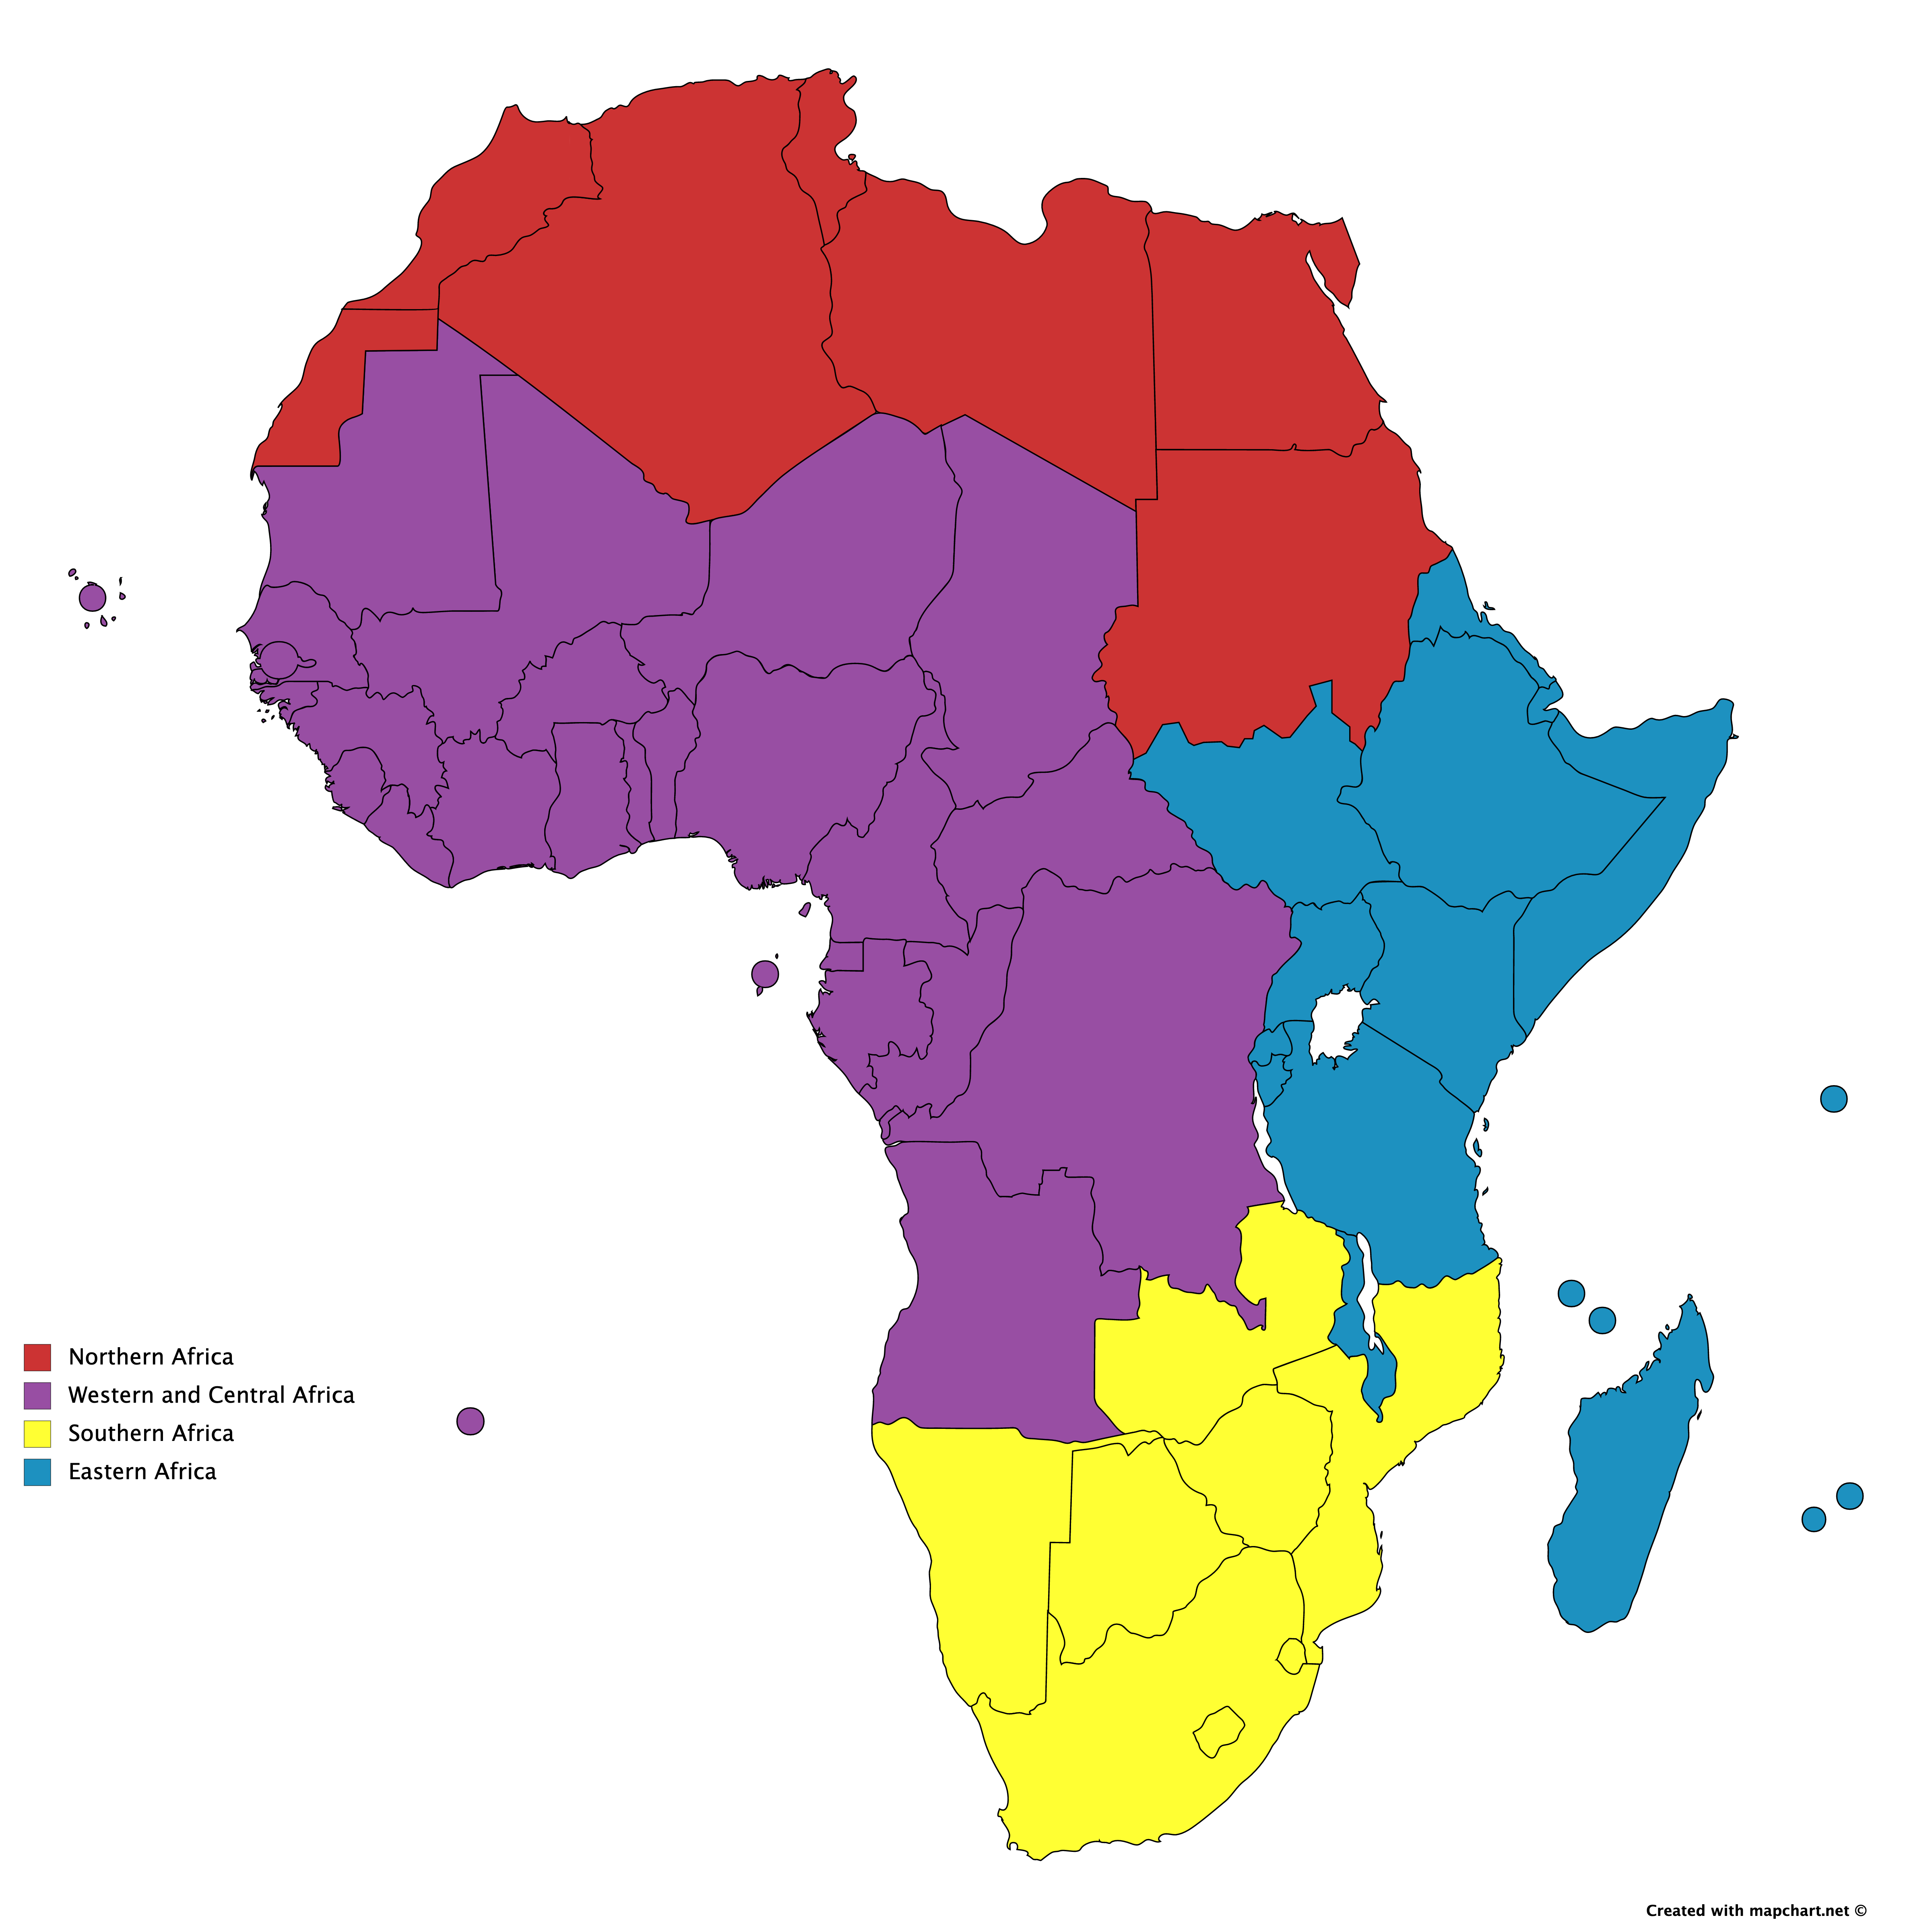 Map of Africa divided into Western and Central Africa, Eastern Africa, Northern Africa, and Southern Africa